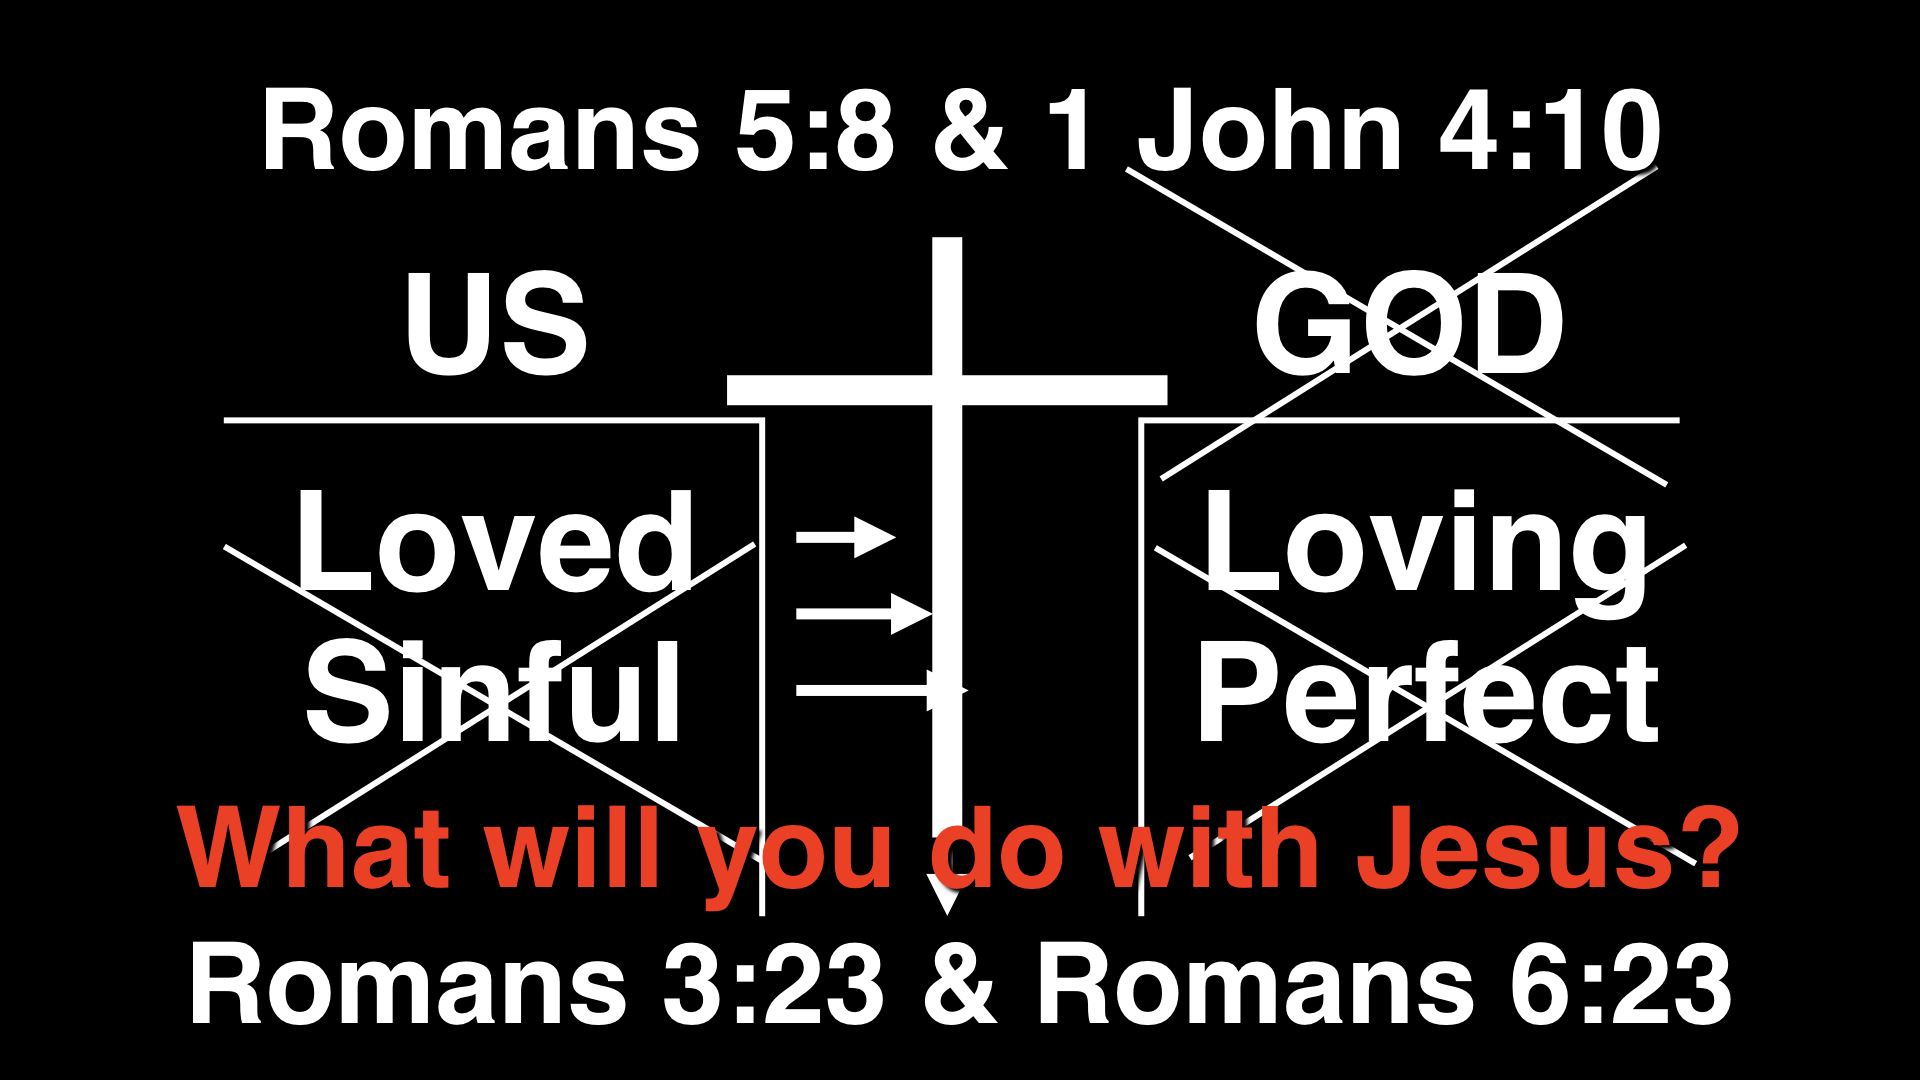 So that leads to this all important questions - WHAT WILL YOU DO WITH JESUS? If he is the way that God has provided for us to have a renewed relationship with himself, then we must take Jesus seriously. What should we do?